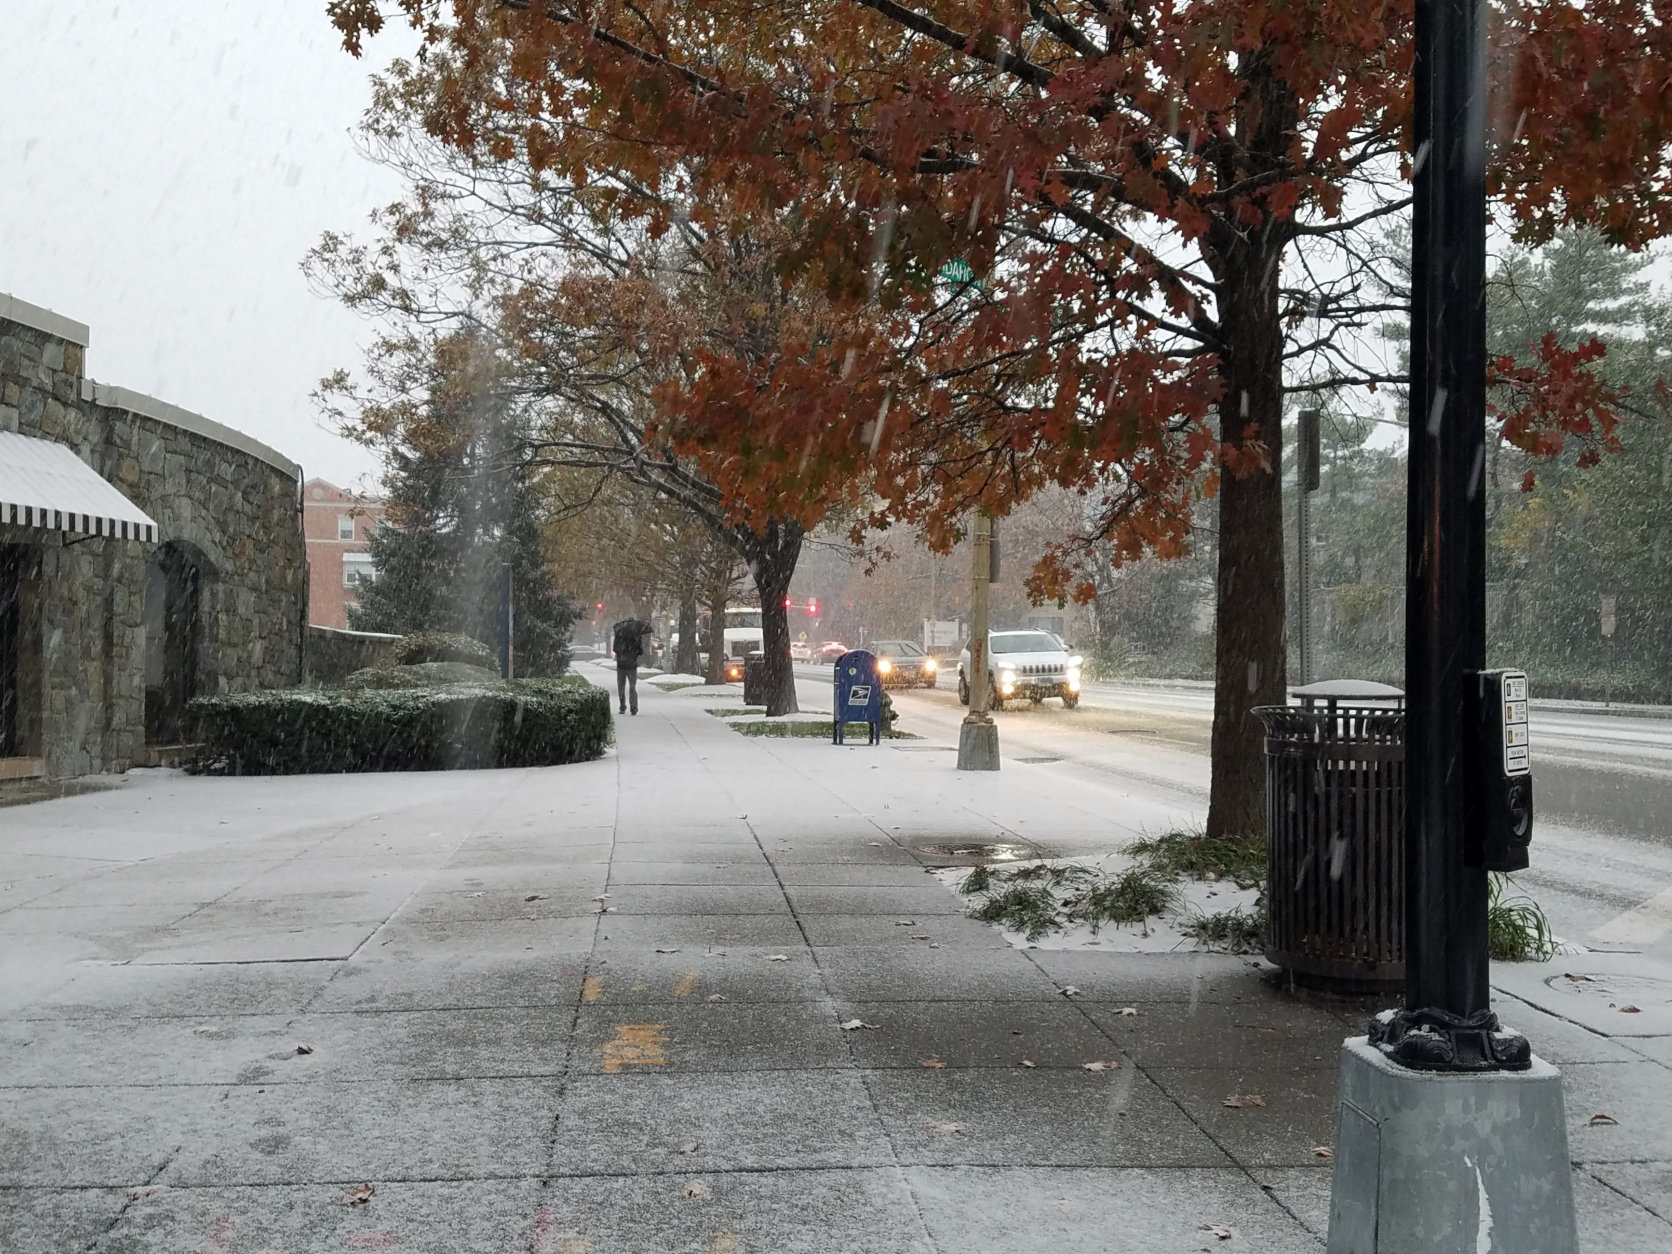 A man makes his way down Wisconsin Ave. in Northwest D.C. as snow falls around him. (WTOP/Will Vitka)